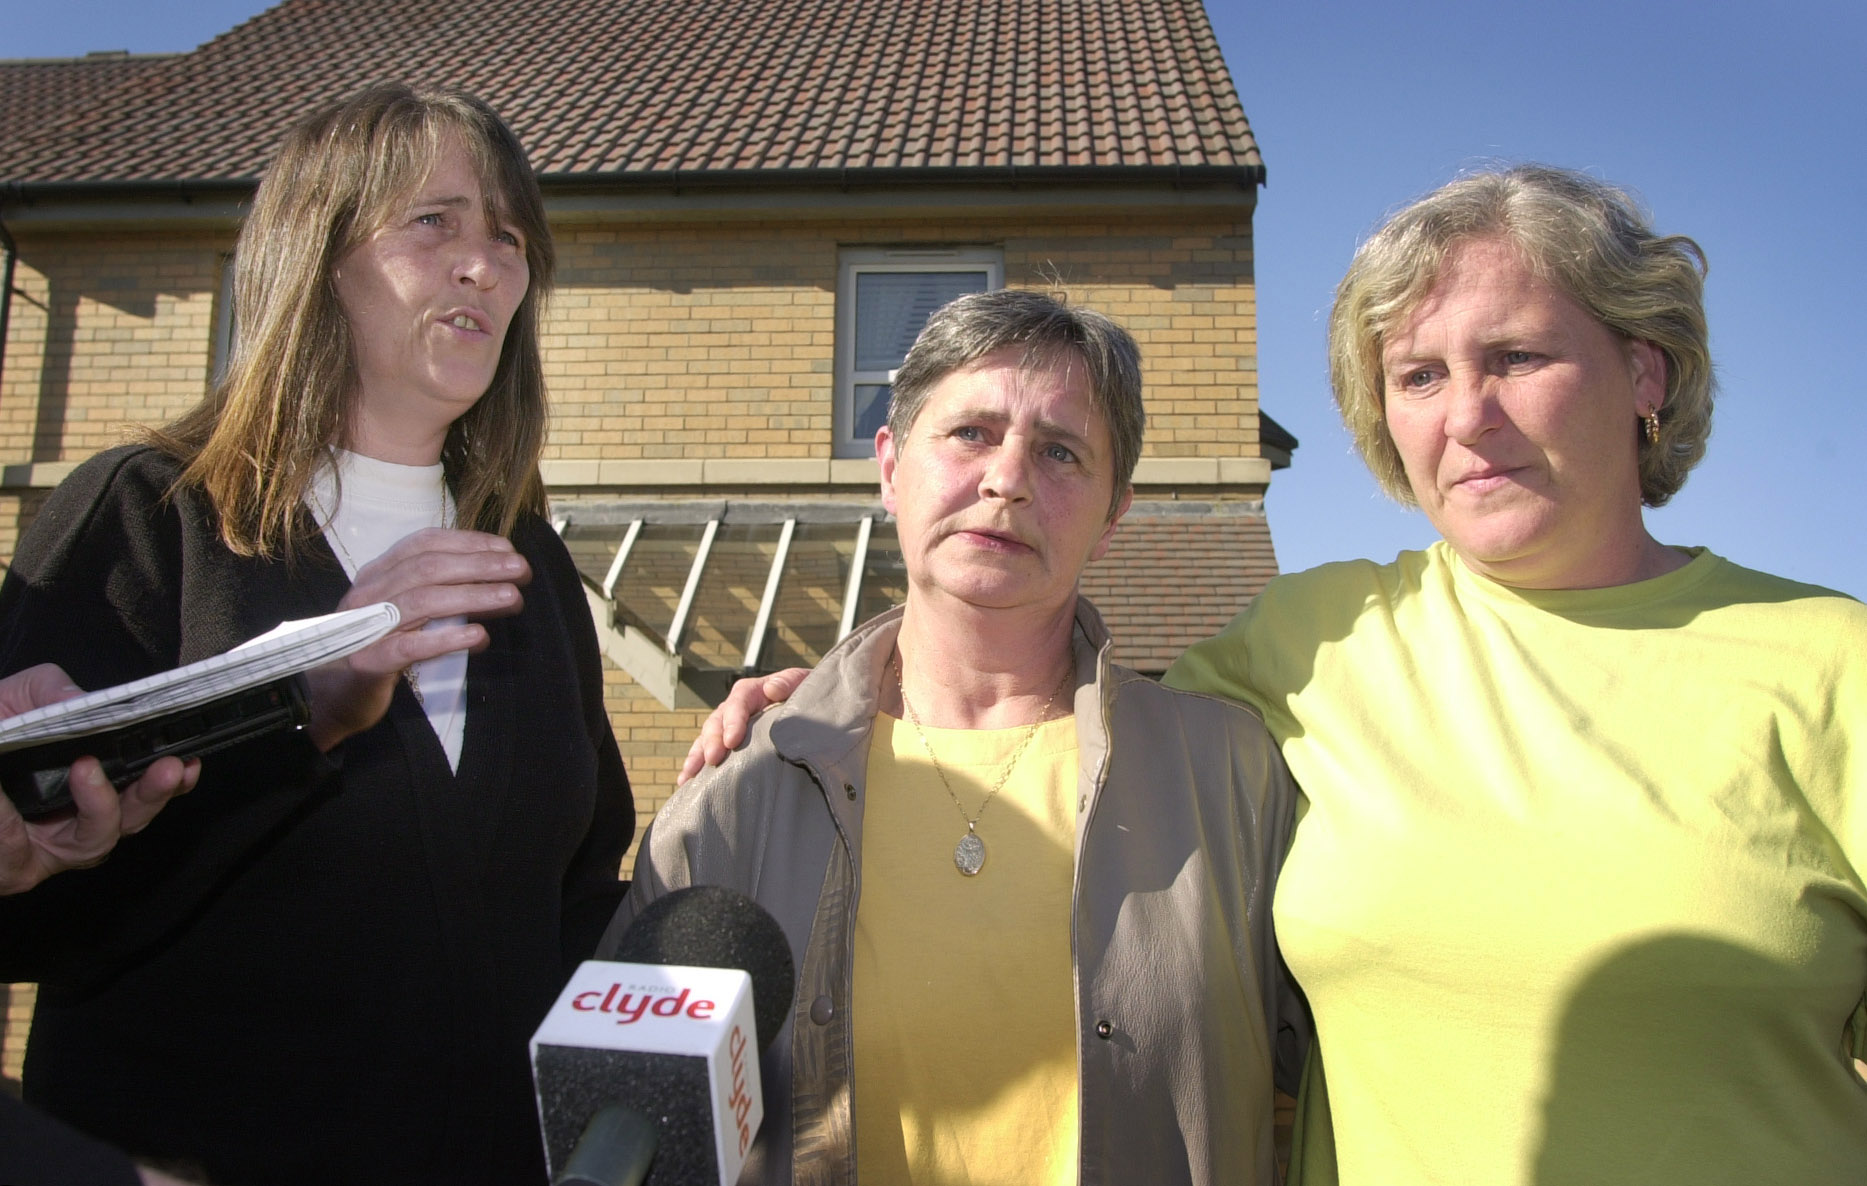 Mother Catherine Gallacher, 58, (centre) accompanied by daughter's Yvonne, (right) and Catherine, from her front garden in Glasgow, gives her reaction to the verdict delivered upon Angus Sinclair, 56, who was found guilty at Glasgow High Court (Source: Ben Curtis - PA Images/PA Images via Getty Images)